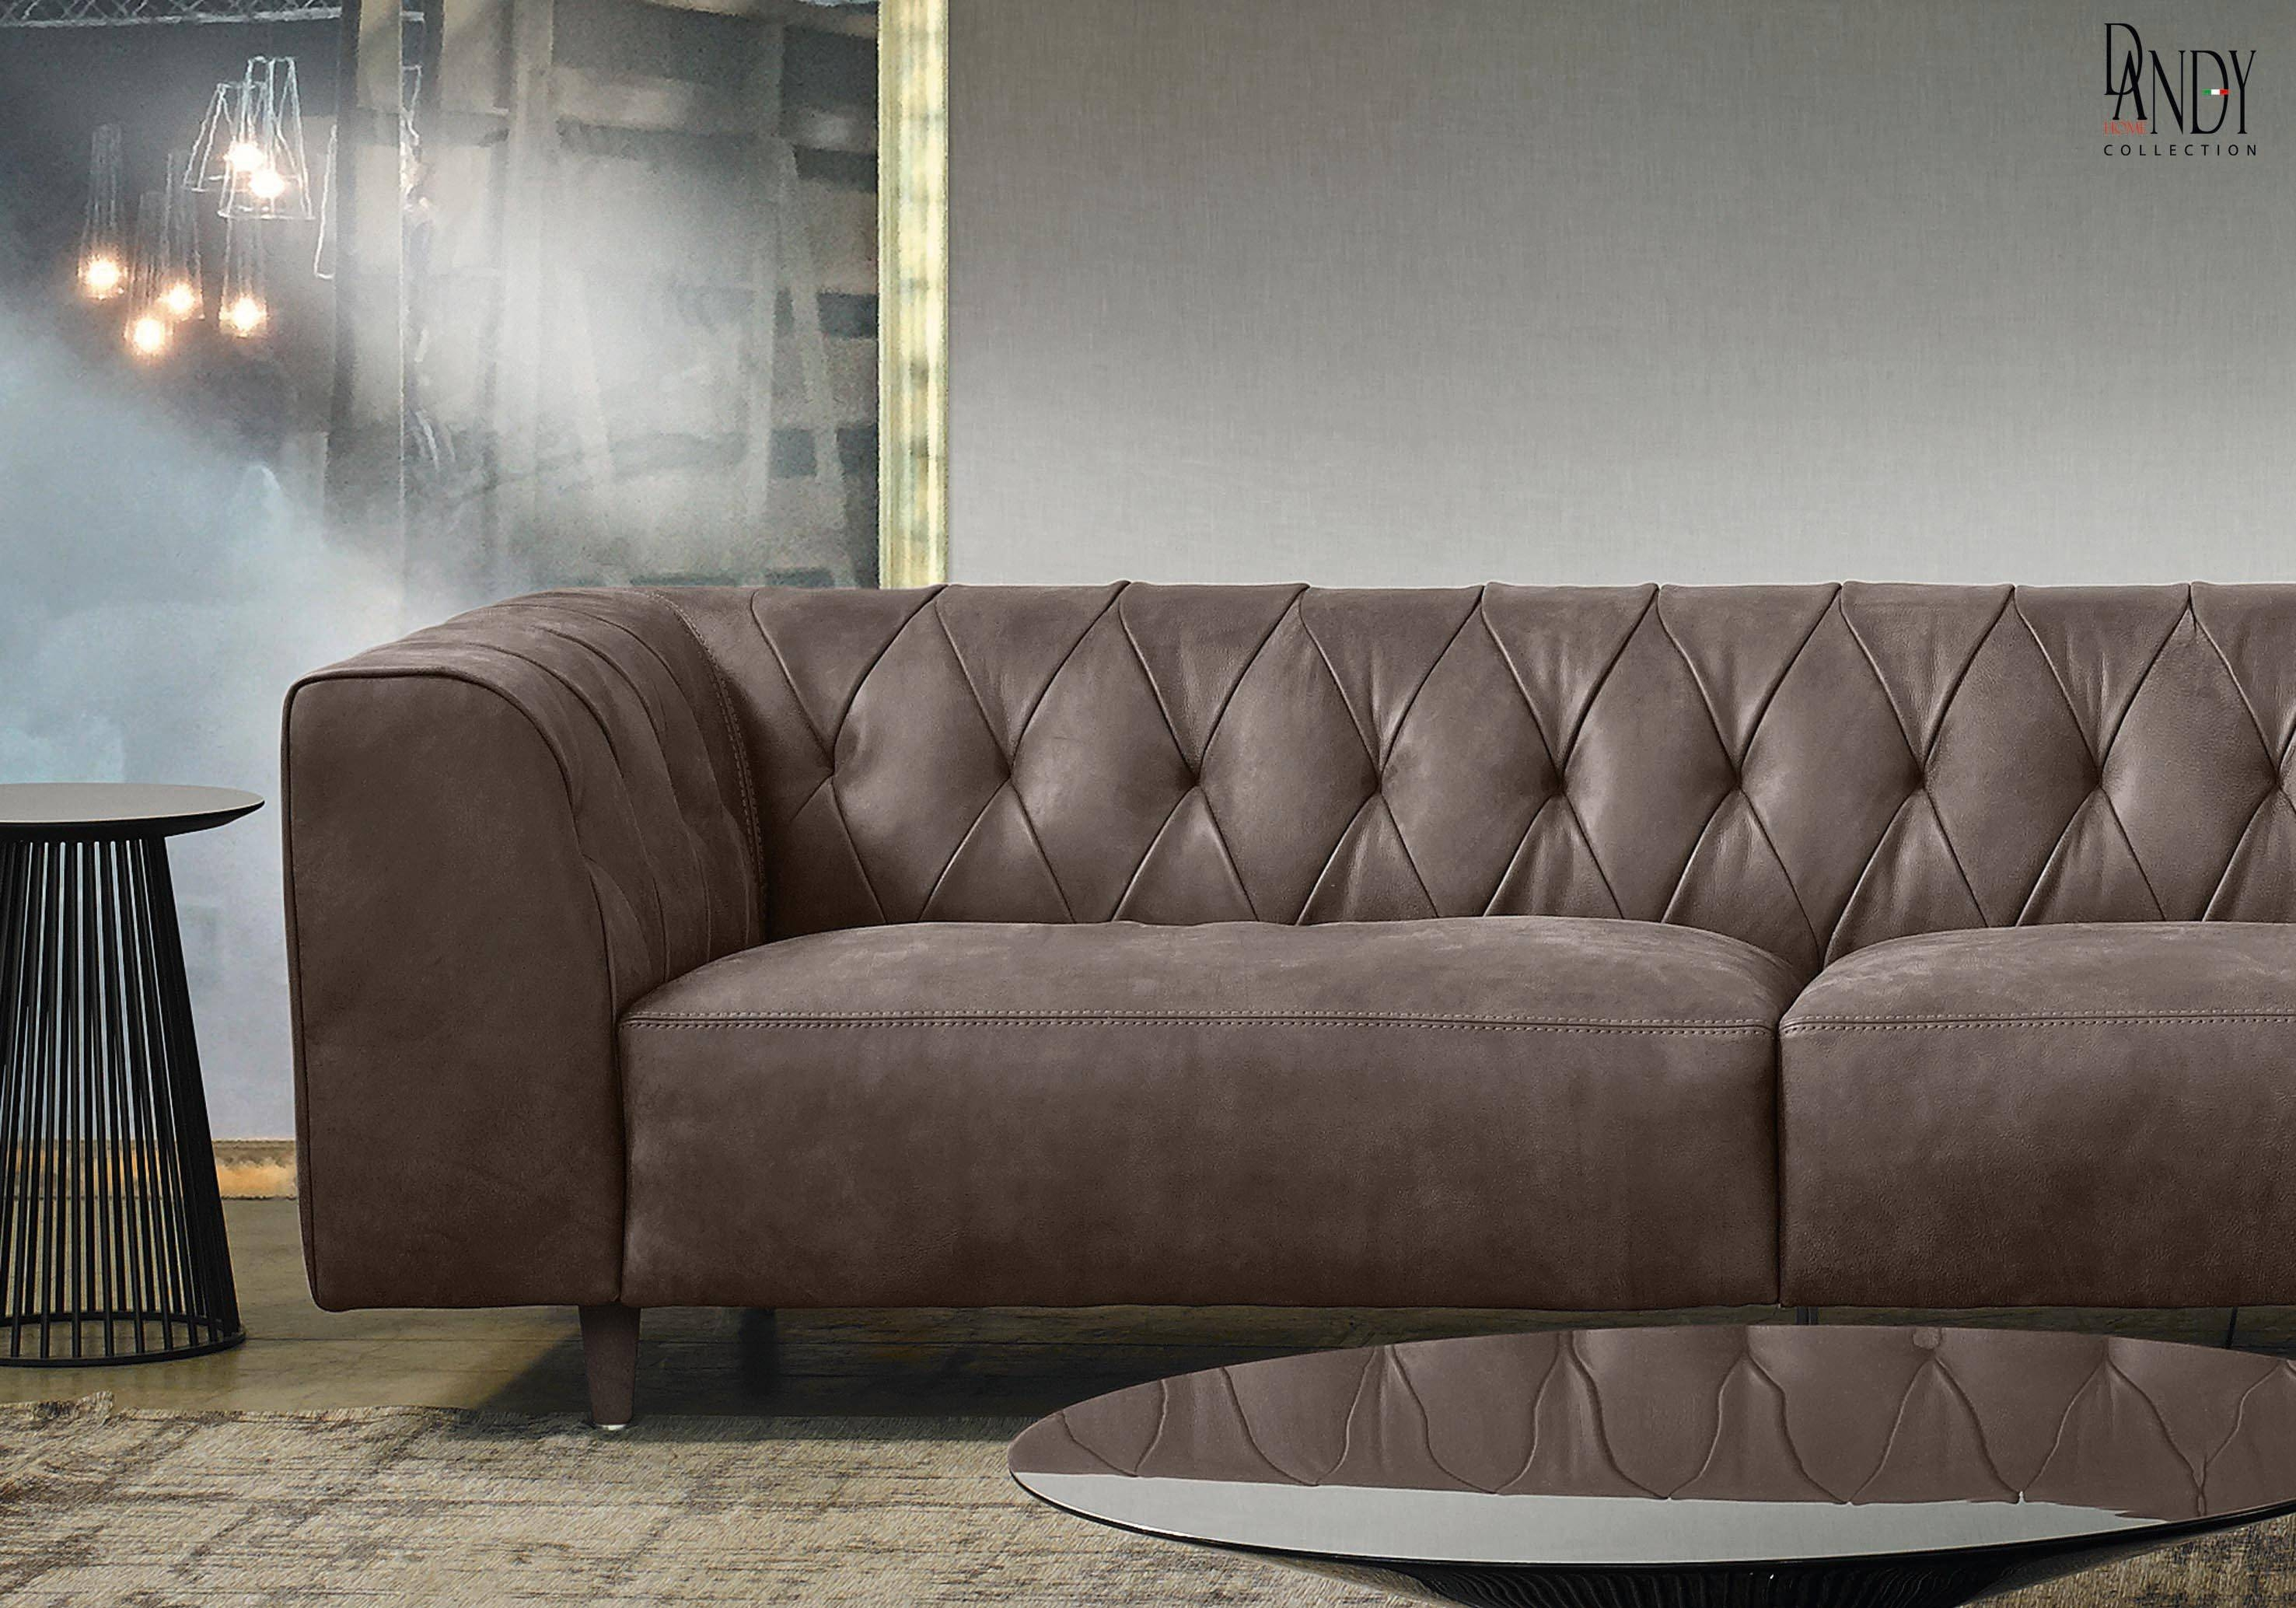 Cantoni Sofa 65 With Cantoni Sofa | Jinanhongyu intended for Cantoni Sofas (Image 2 of 15)